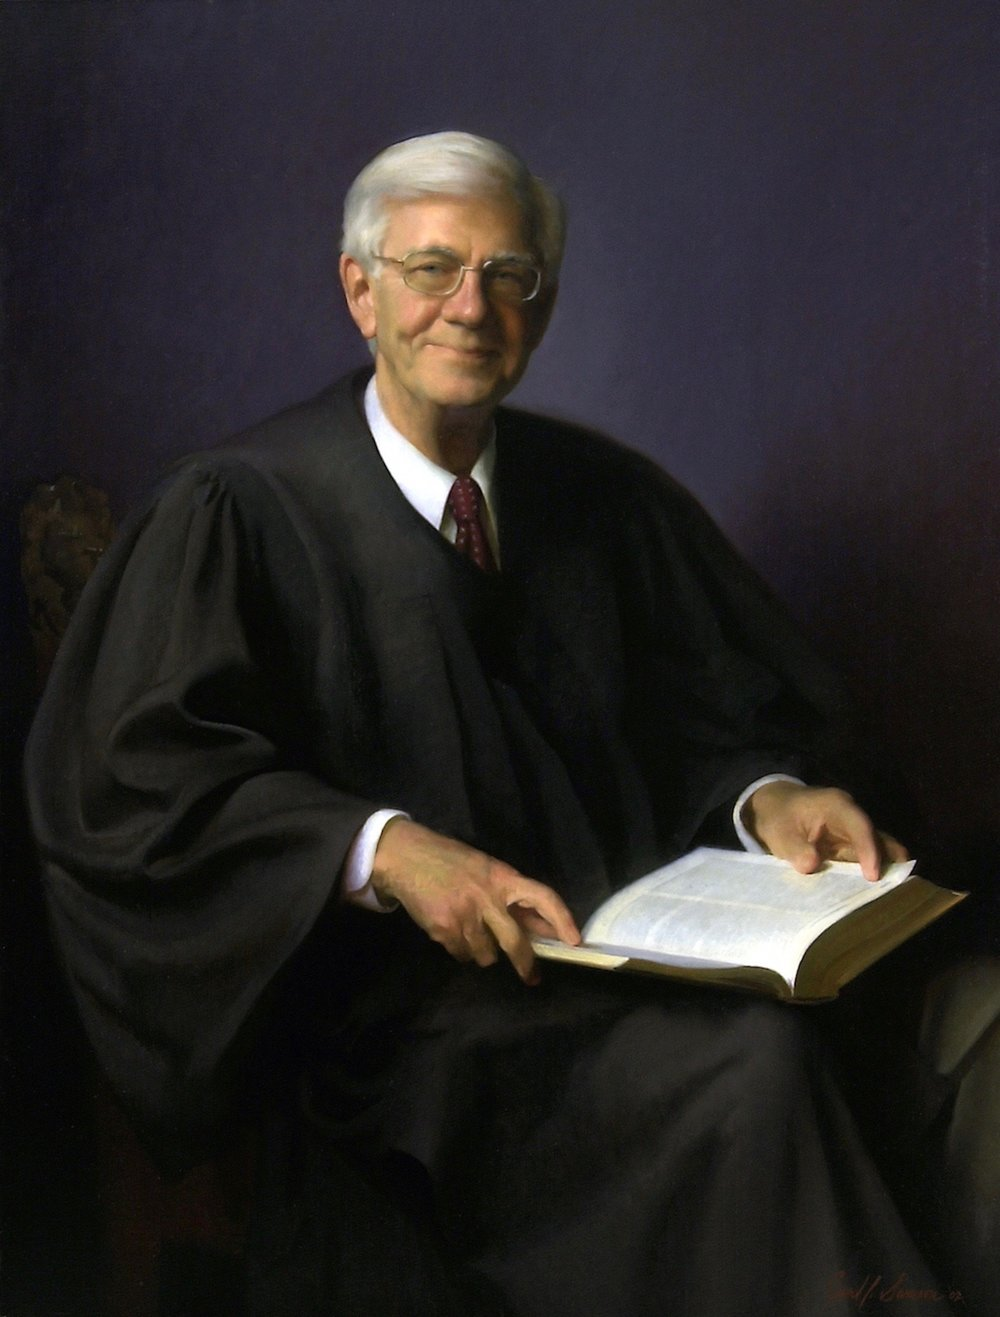 Oil Portrait, Federal Judge